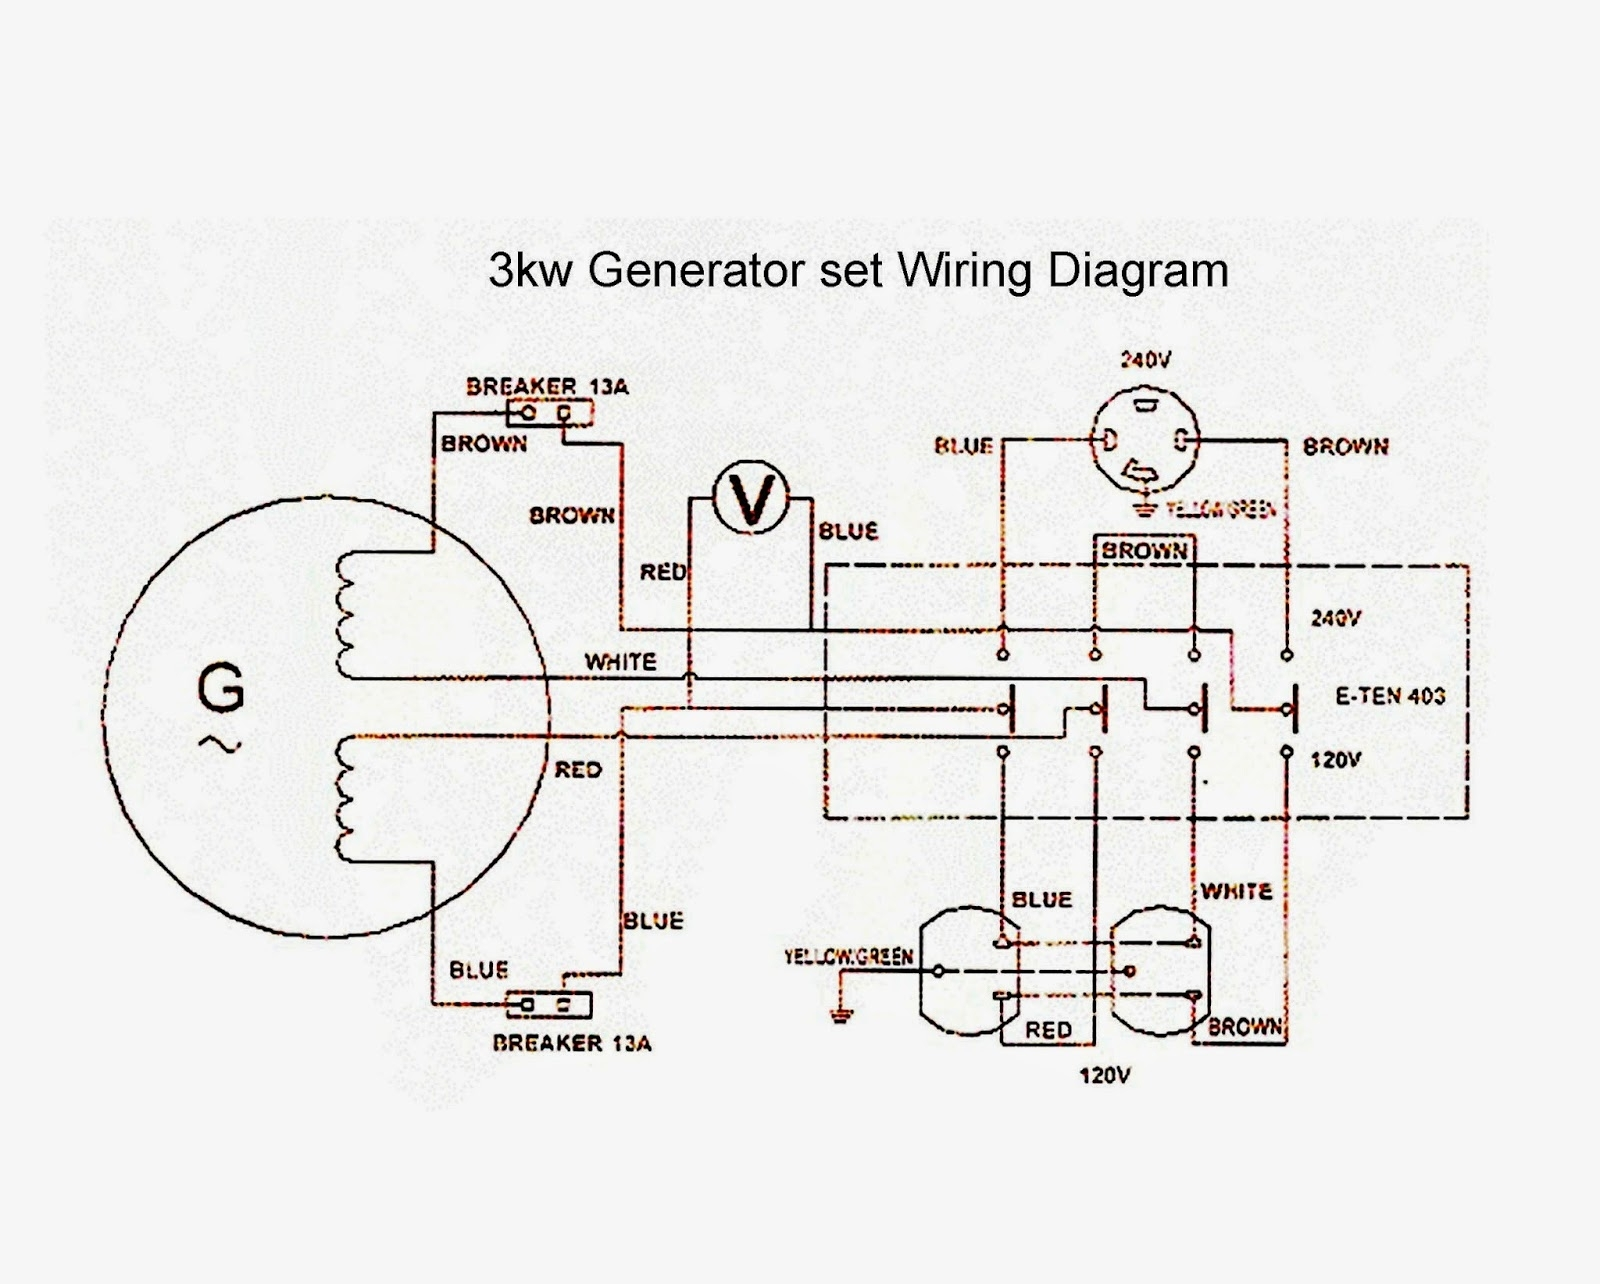 tracing of panel wiring diagram an alternator image venn in word 2007 ac electrical diagrams generator fuse box and